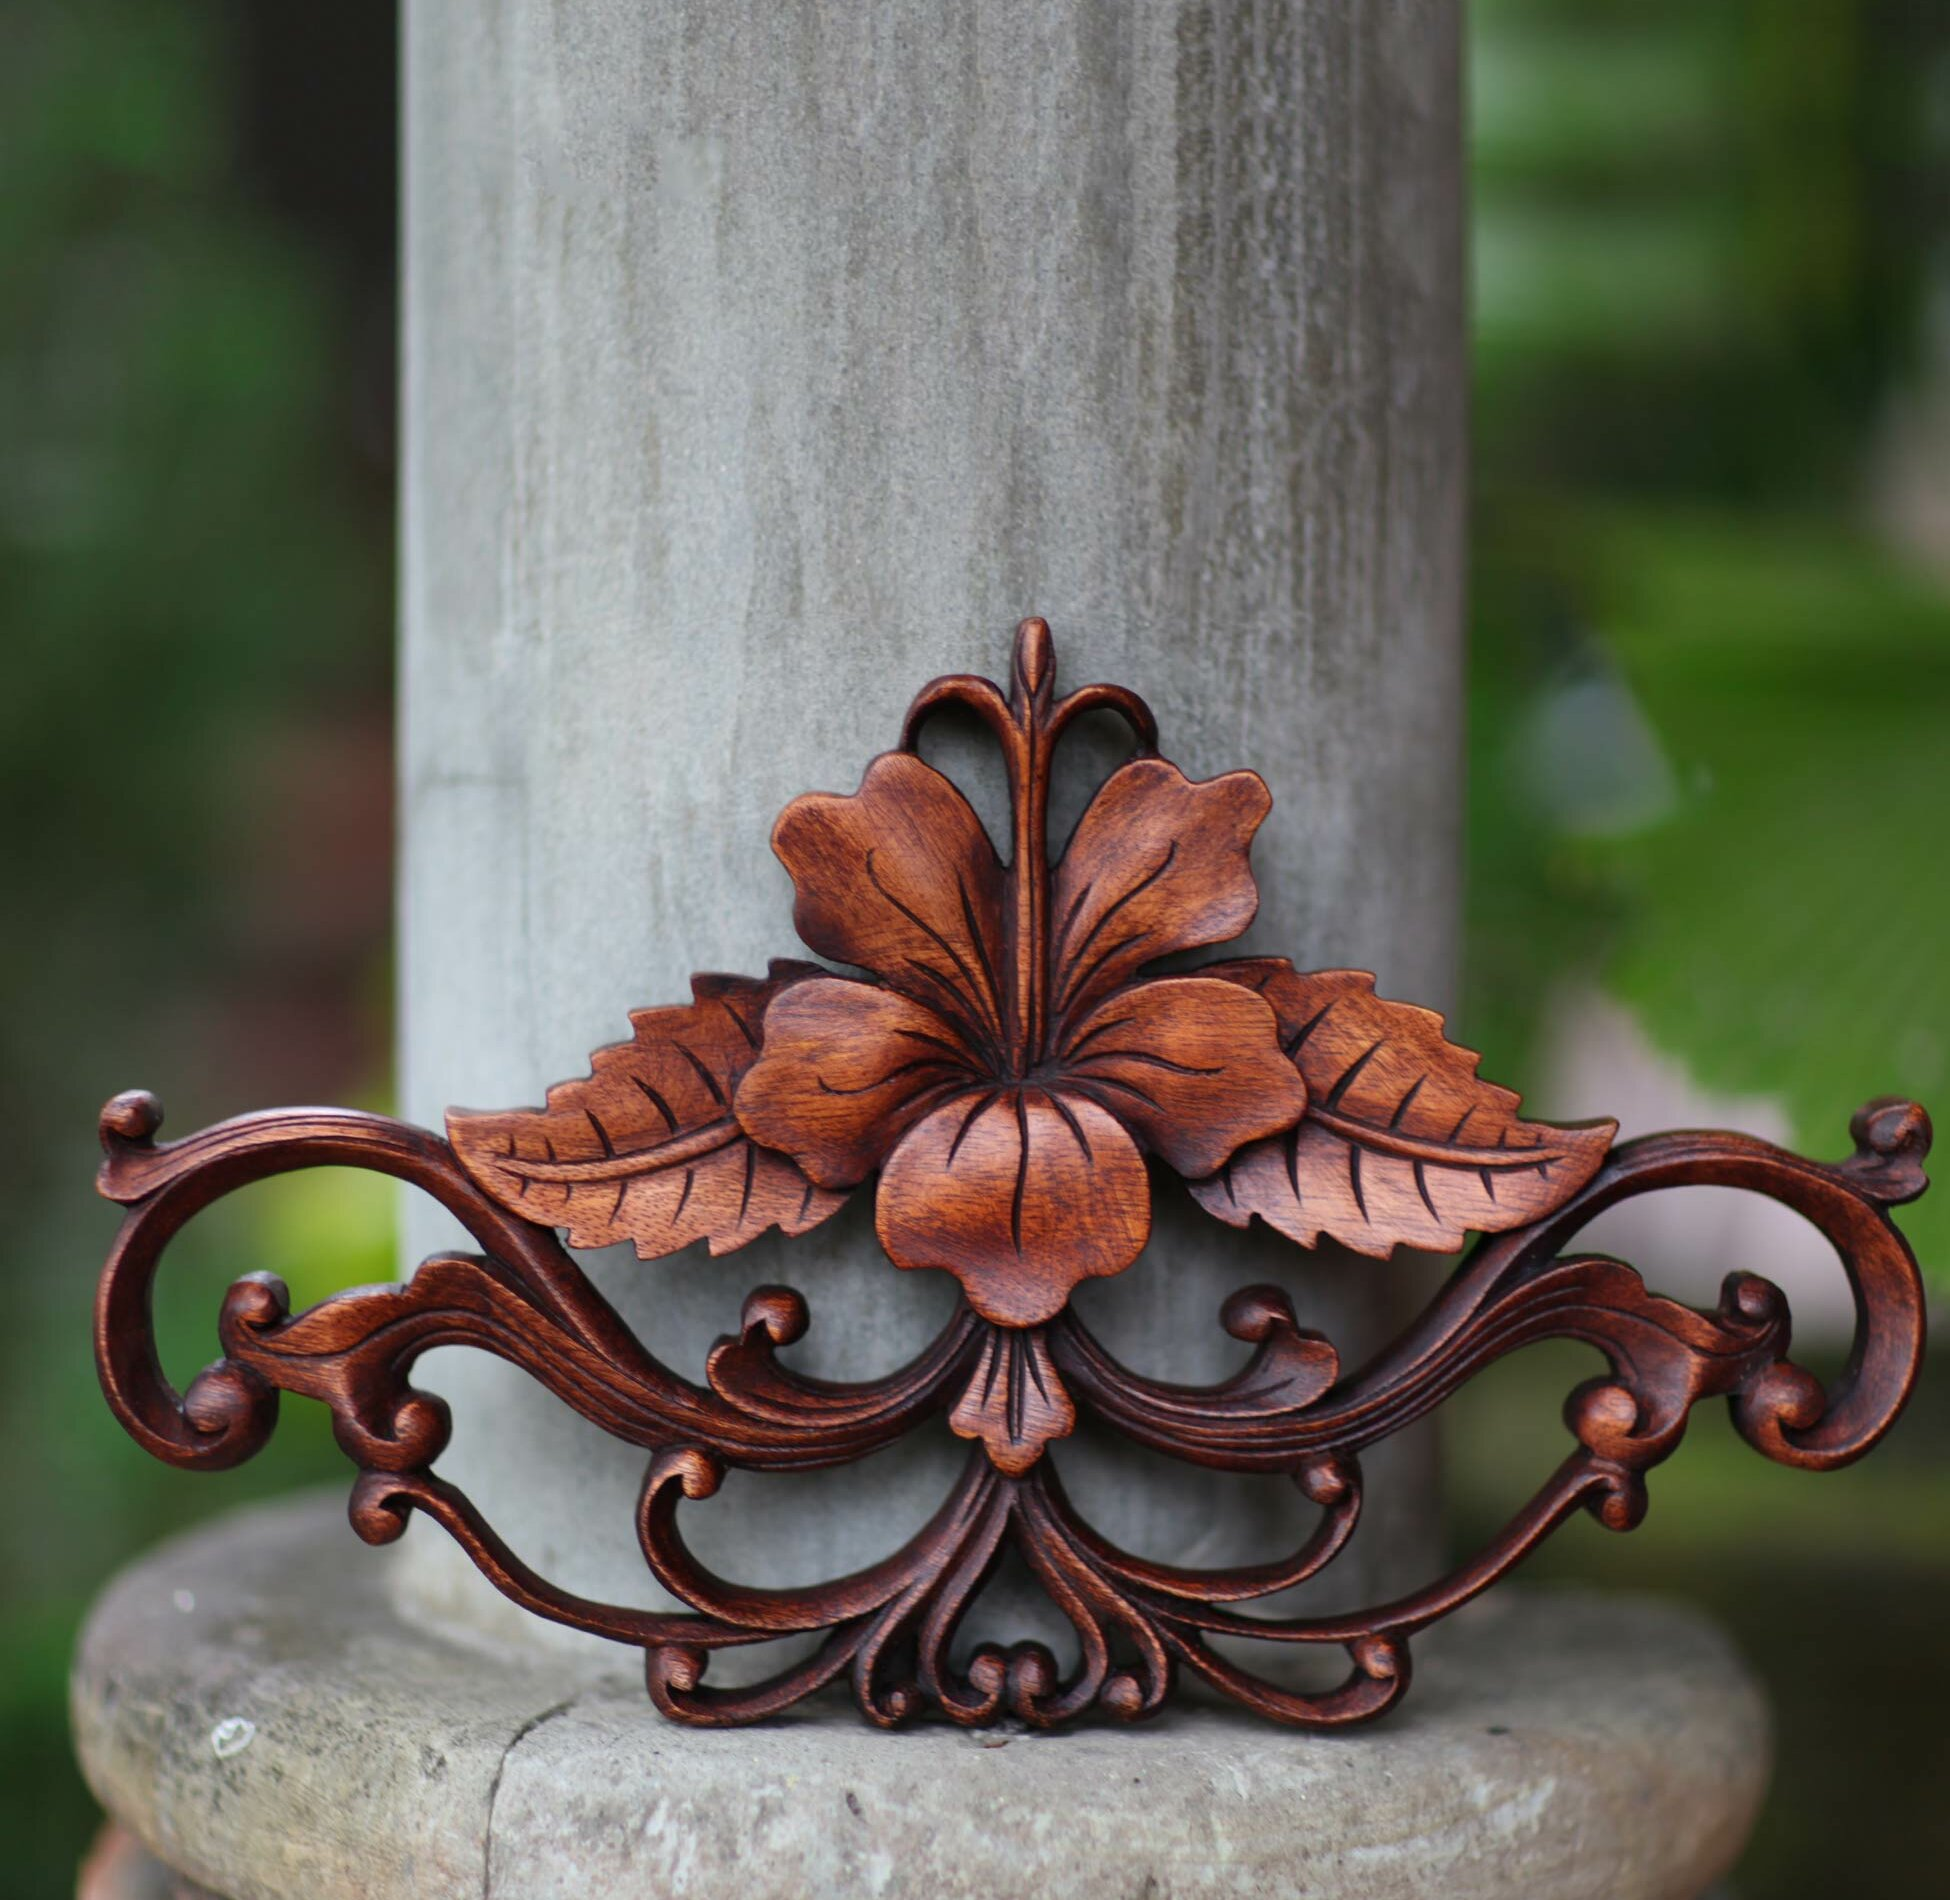 Novica Unique Fair Trade Floral Themed Hibiscus' Hand Carved ... on italy furniture, spain furniture, balinese furniture, cameroon furniture, teak root furniture, british virgin island furniture, thailand furniture, antique furniture, brisbane furniture, haiti furniture, guyana rattan furniture, bali furniture, middle eastern furniture, china's furniture, brunei furniture, coolest wood furniture, bedroom furniture, japan furniture, iceland furniture, netherlands furniture,